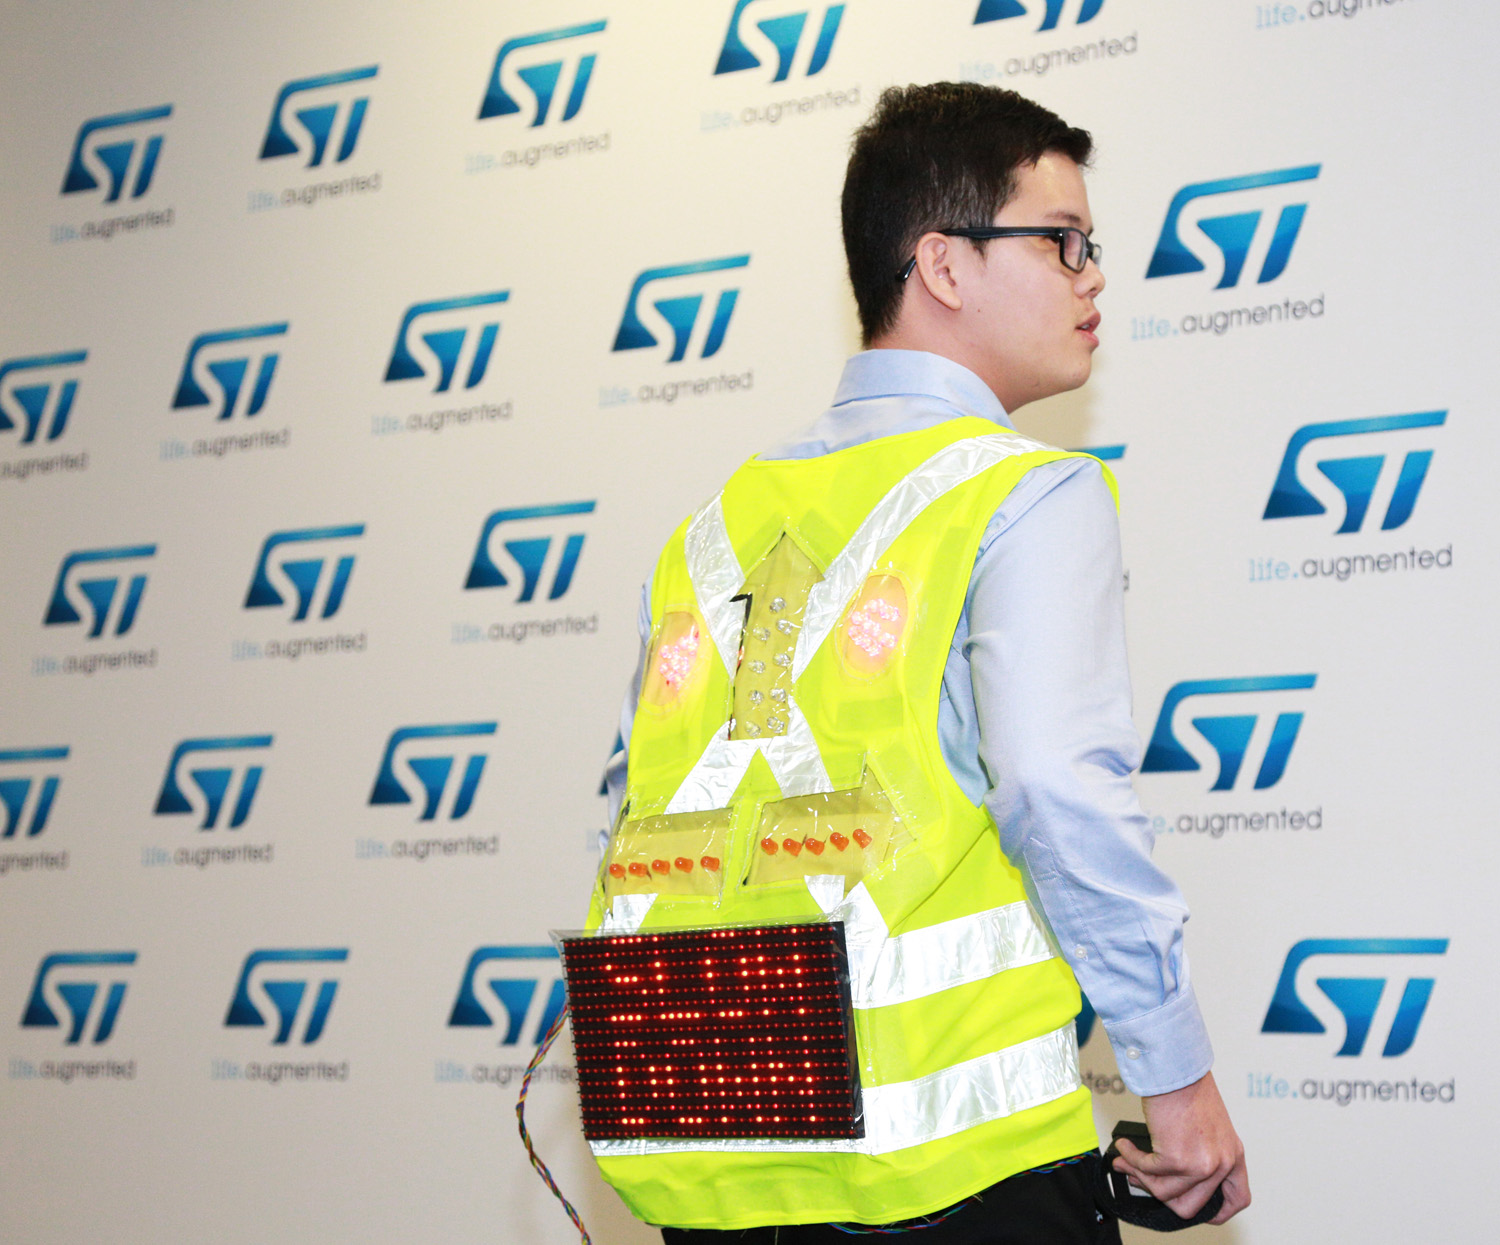 STMicroelectronics Nurtures Young Talent in Smart Sensor Technology